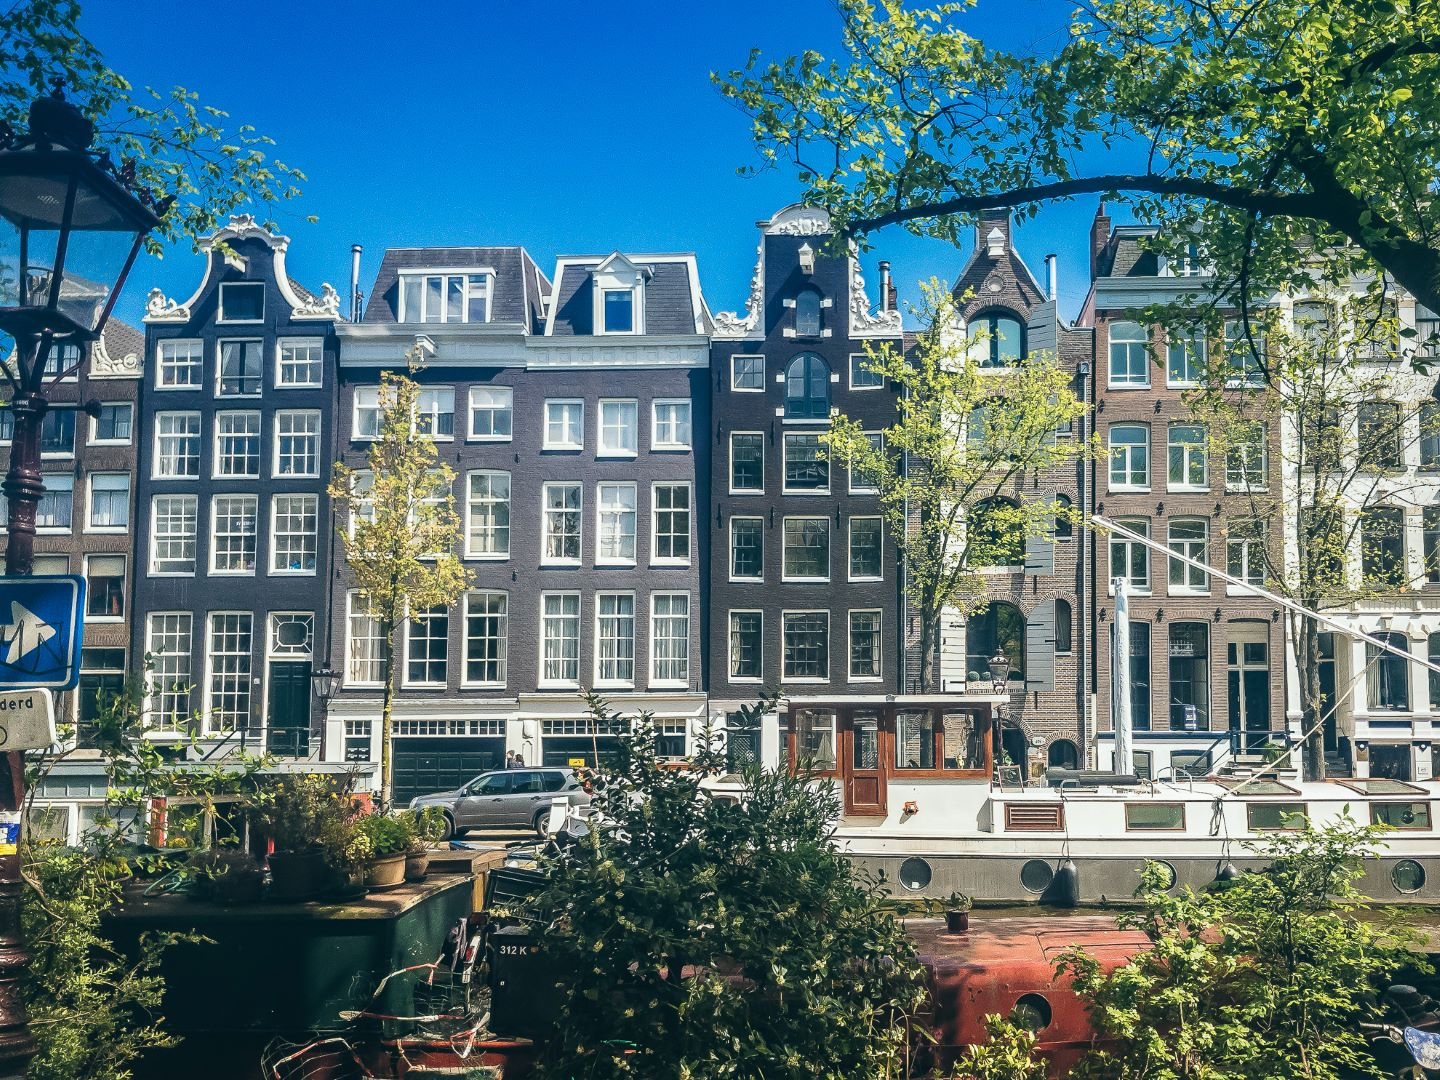 Amsterdam Canal Houses Boat View.jpg